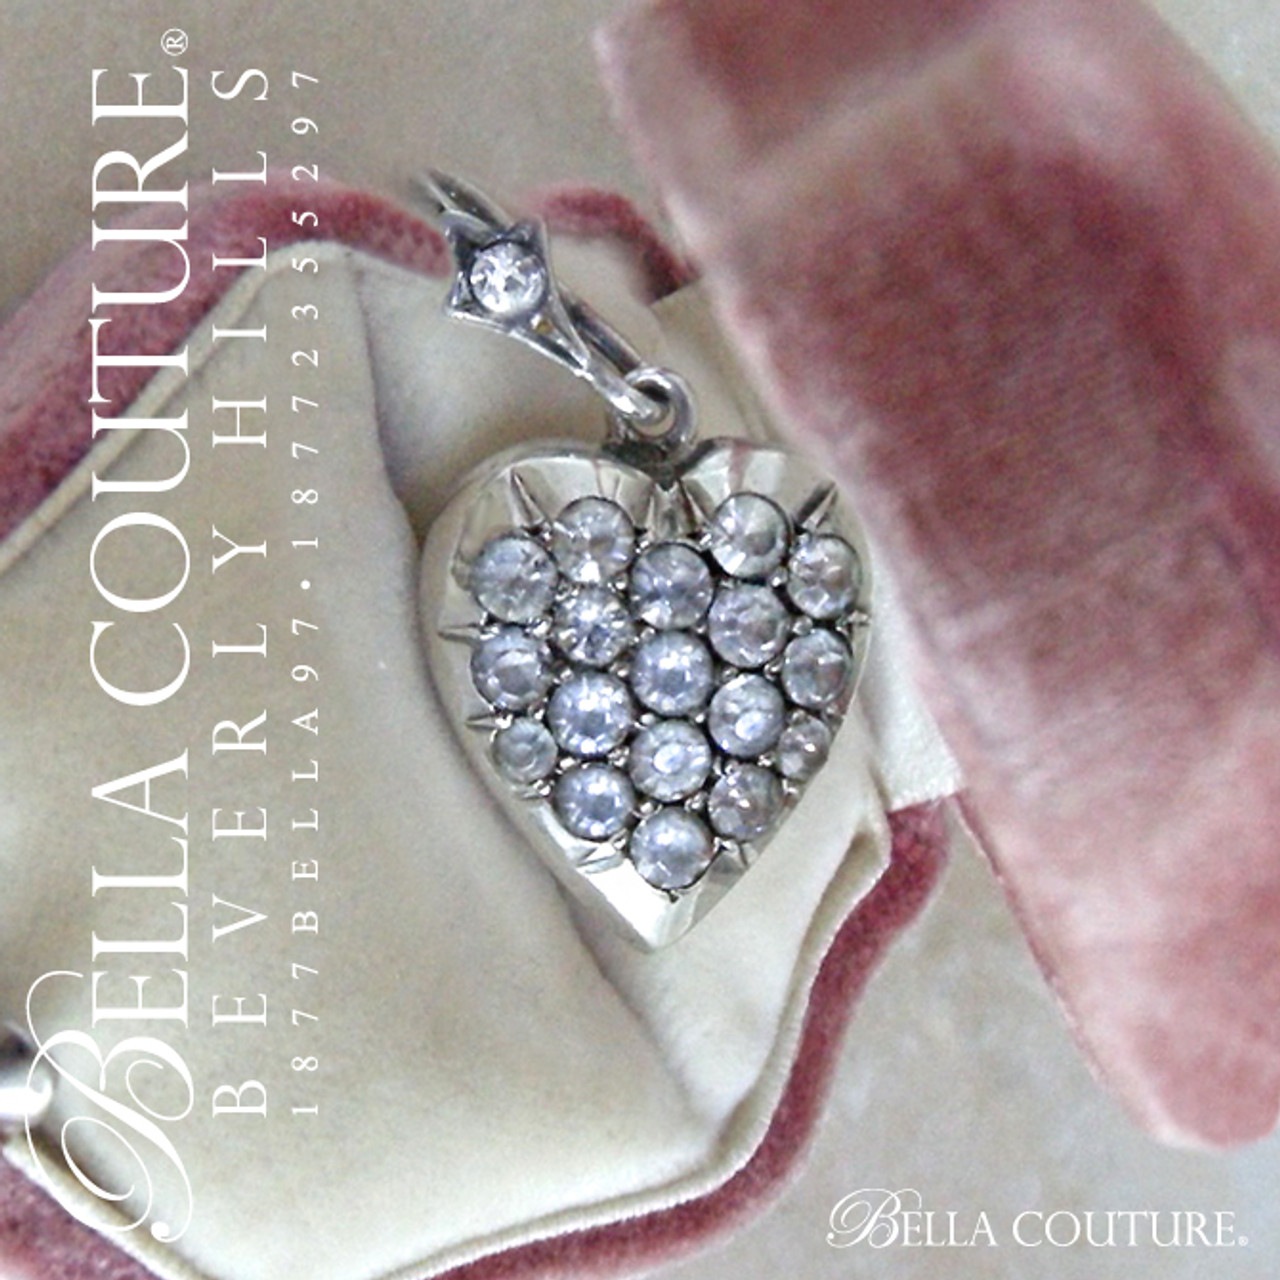 8589224310e59 (ANTIQUE) Gorgeous Rare GEORGIAN Victorian Puffy Heart Sterling Silver  Diamond-Paste Pave Charm Pendant c.1700 - 1840 - BELLA COUTURE ®